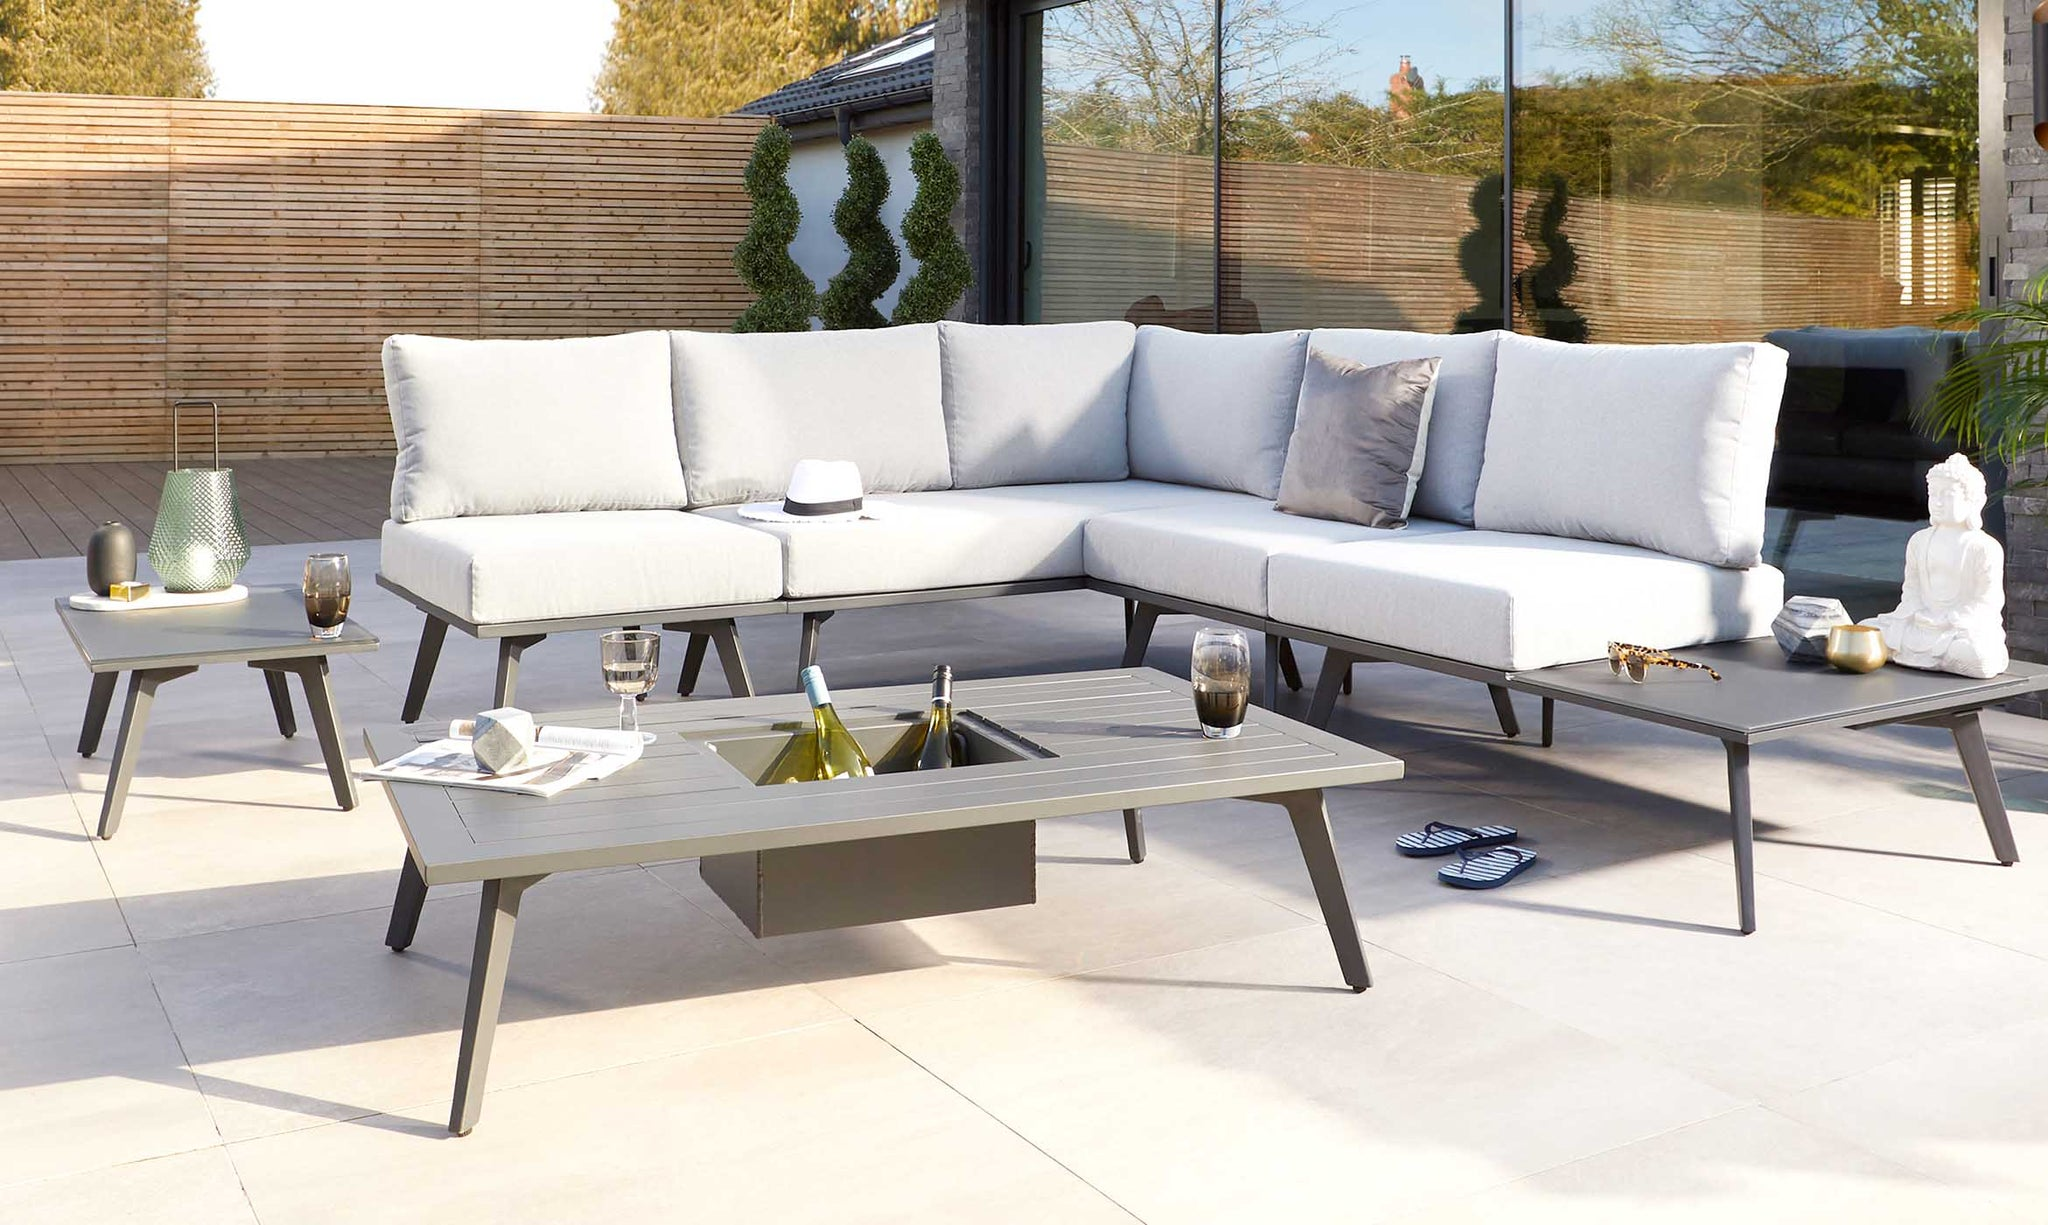 Garden Furniture Buying Guide: Everything You Need To Know